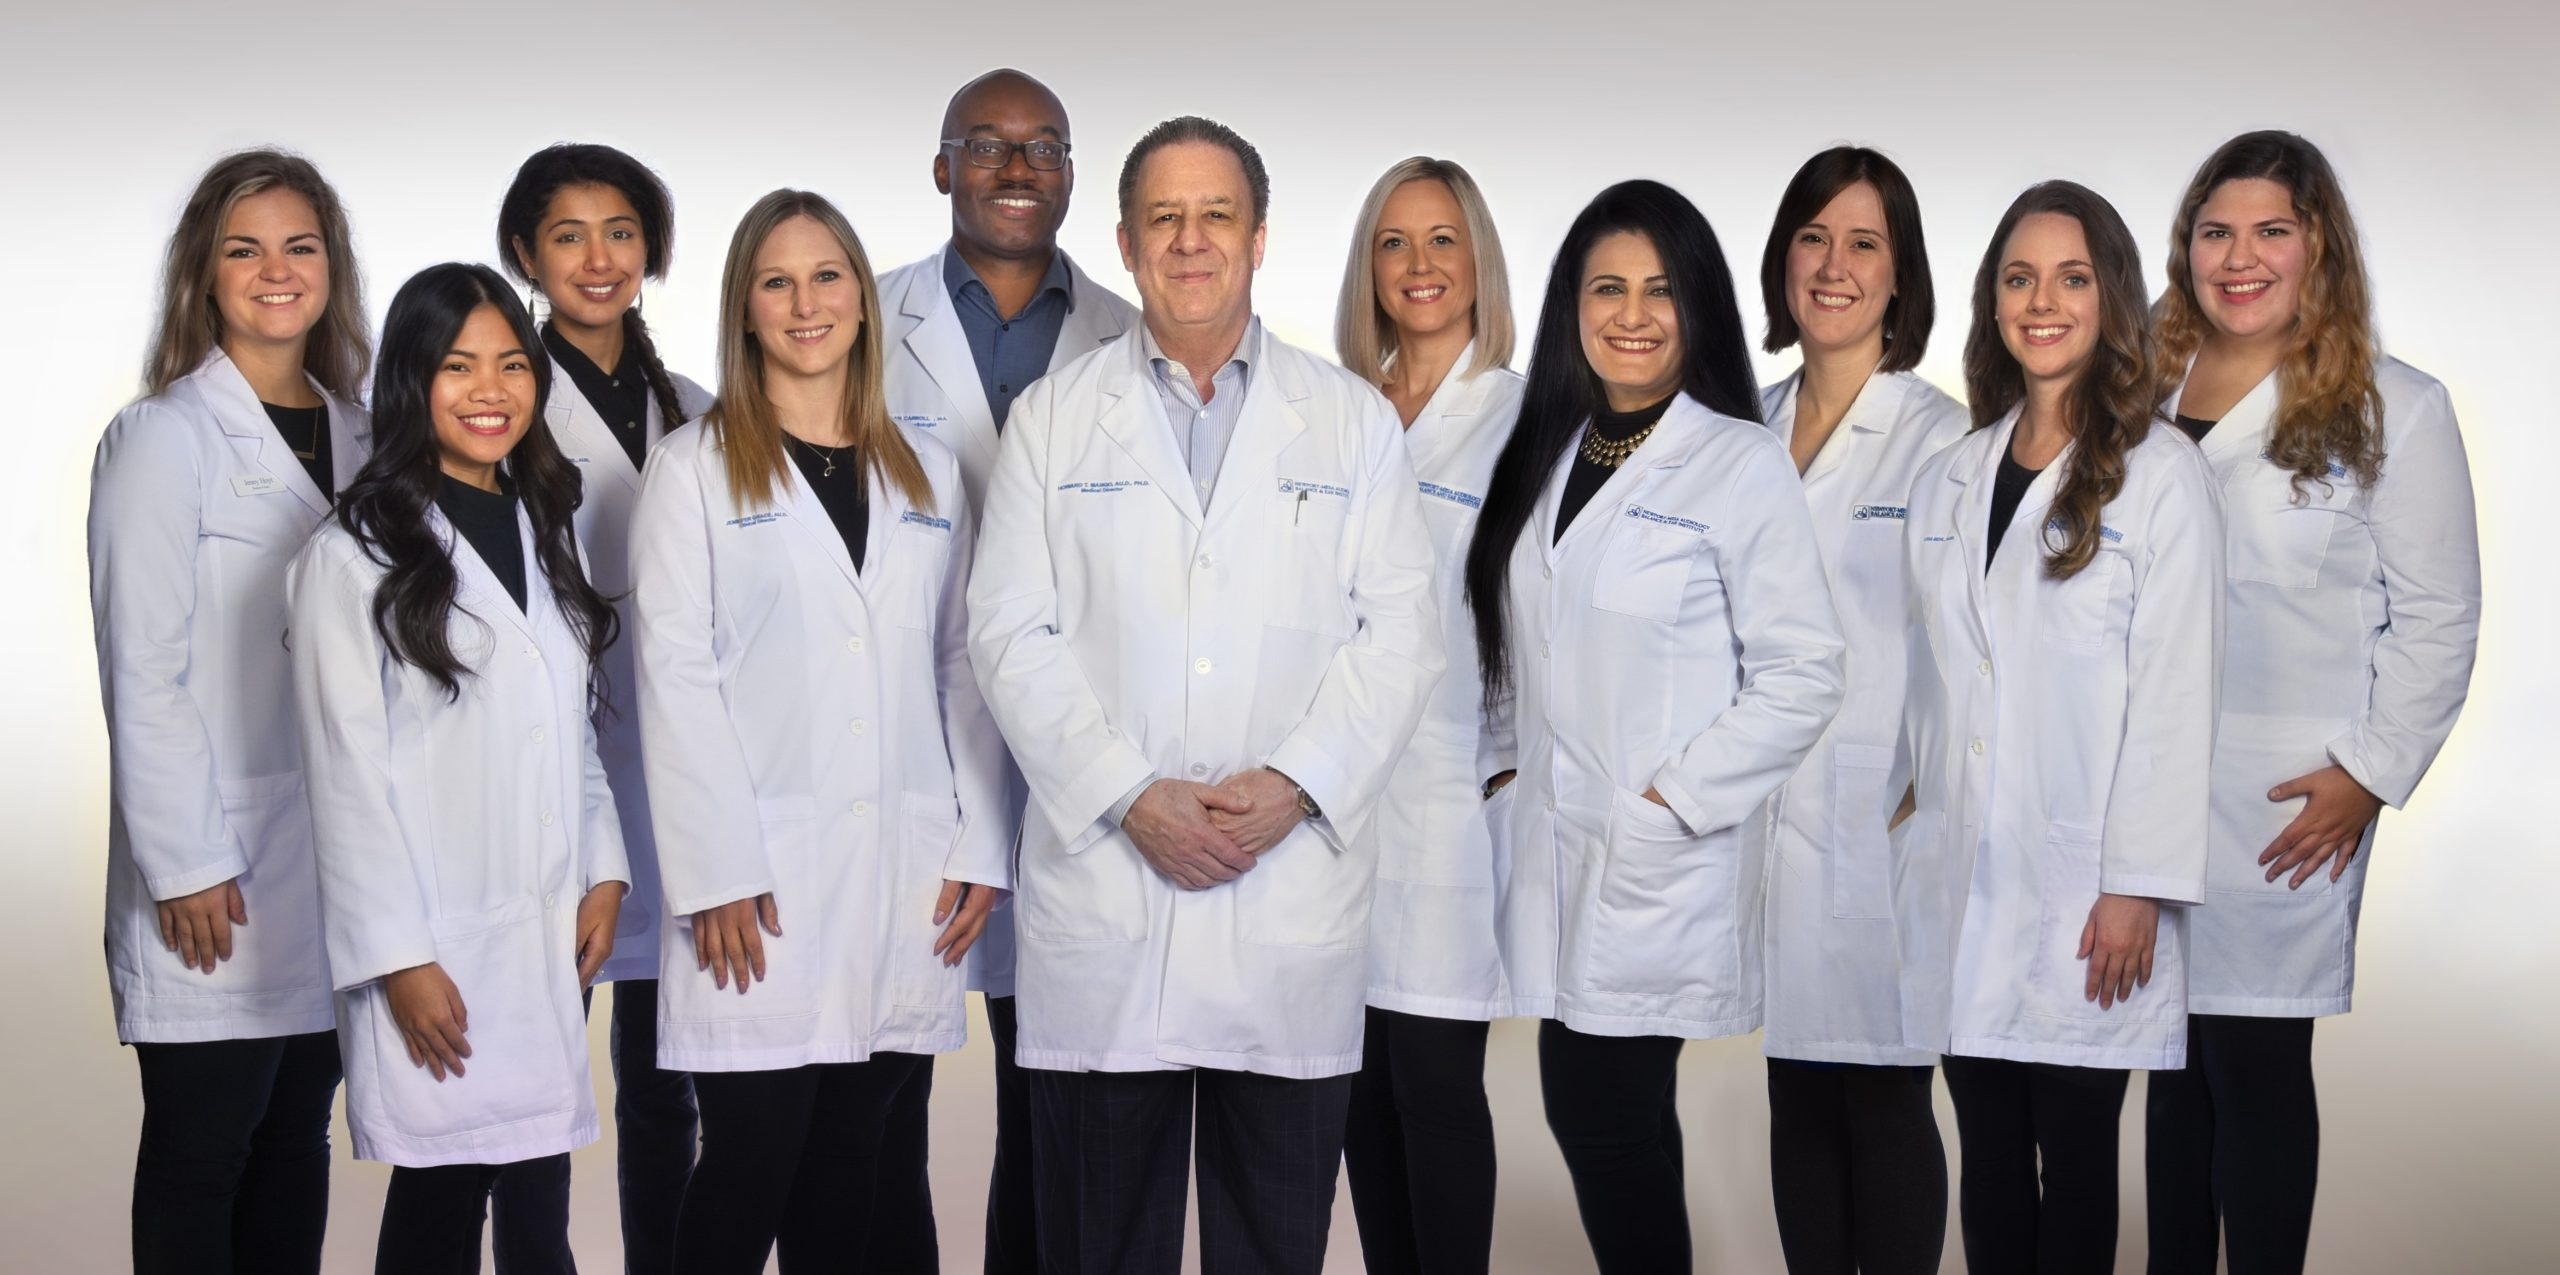 NMA Clinical Staff Photo